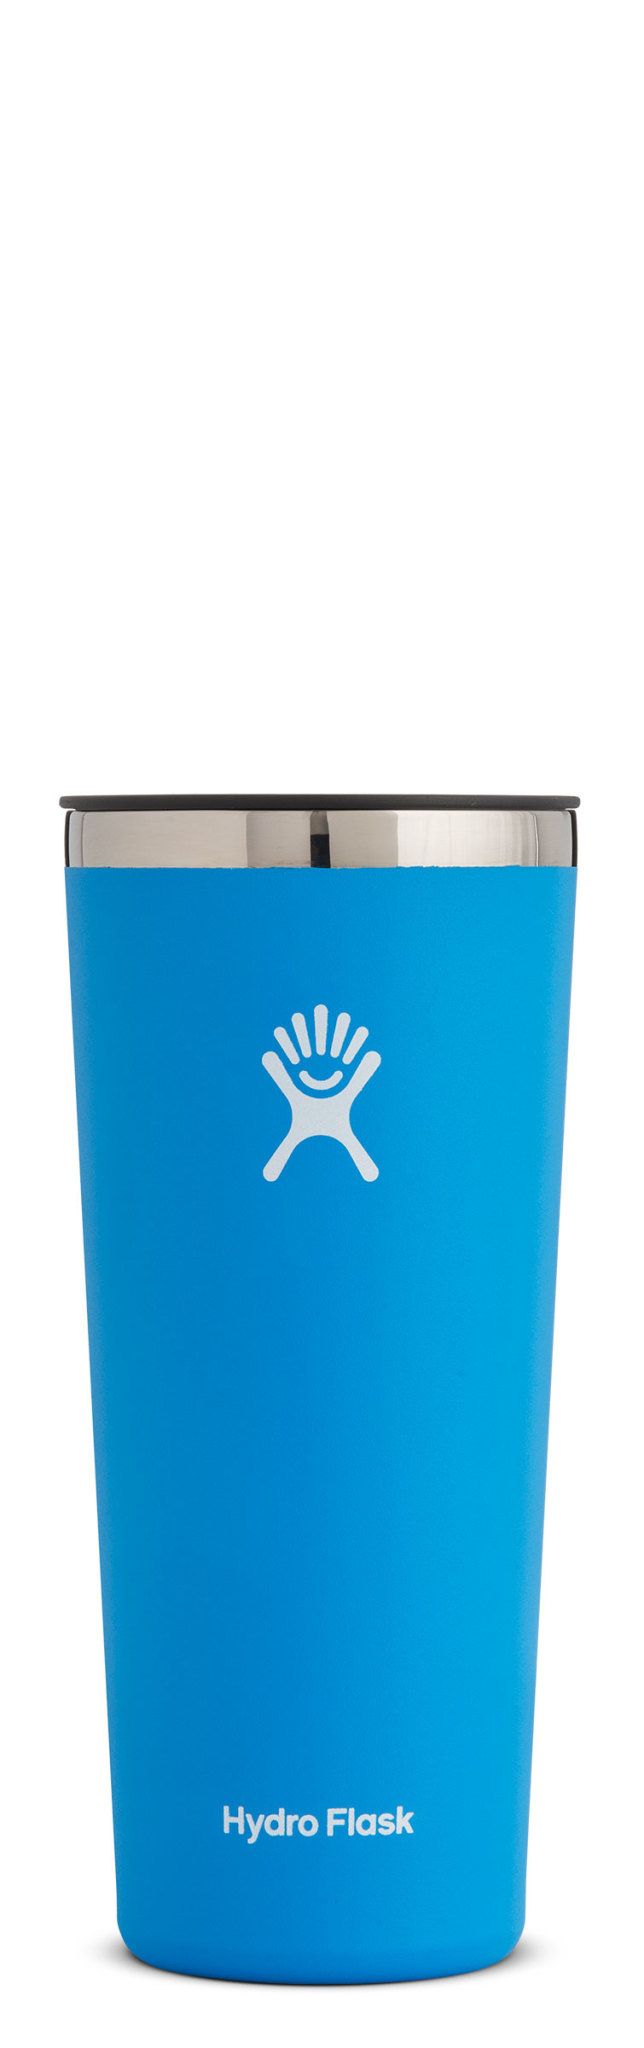 Hydro Flask 22oz Tumbler-4